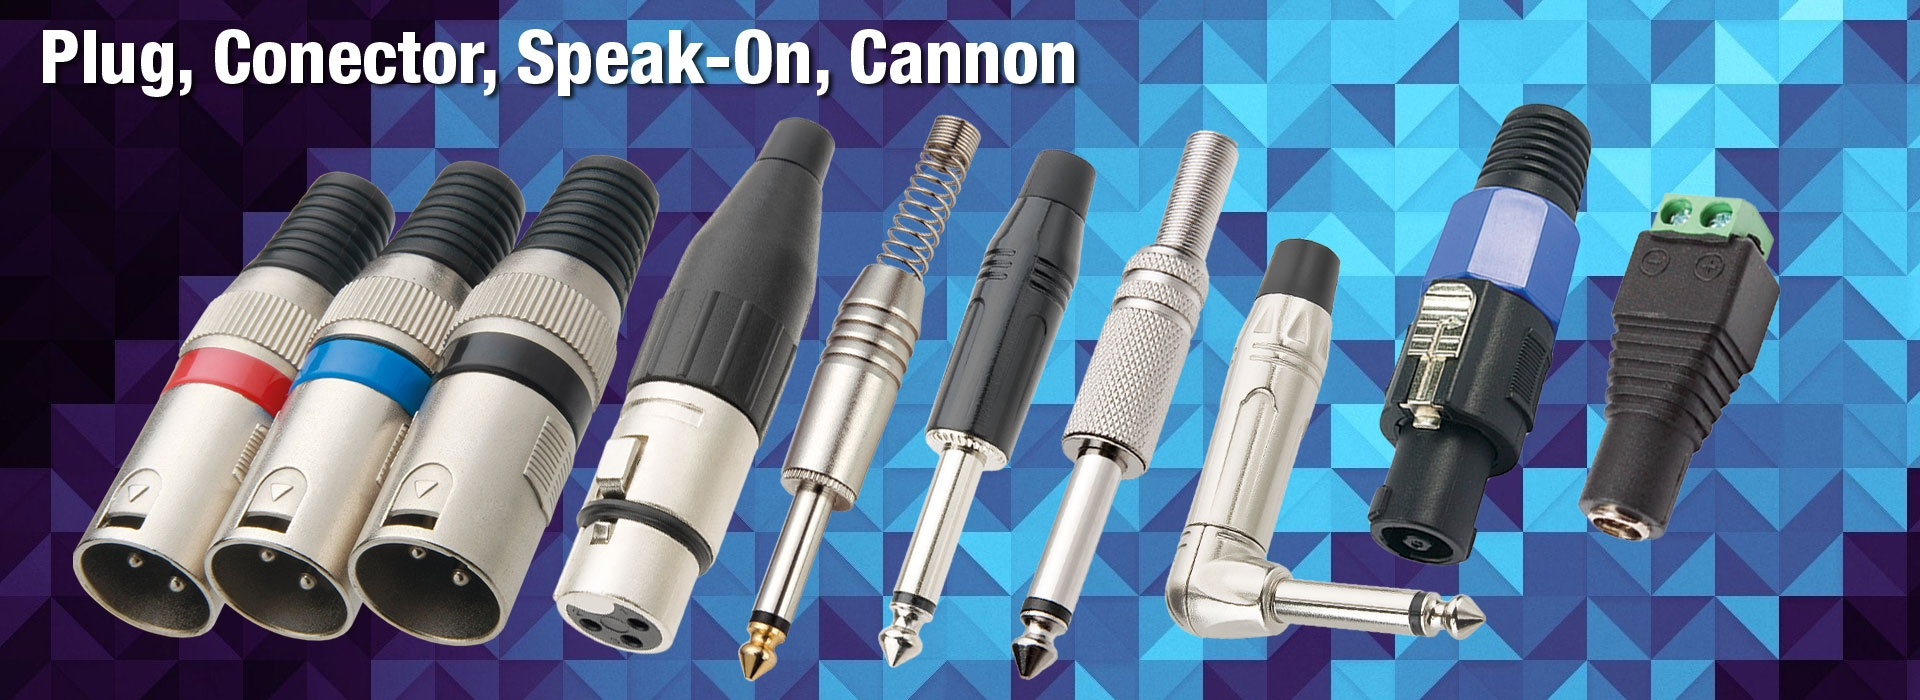 Linha de Plug, Conector, Speak-On e Cannon